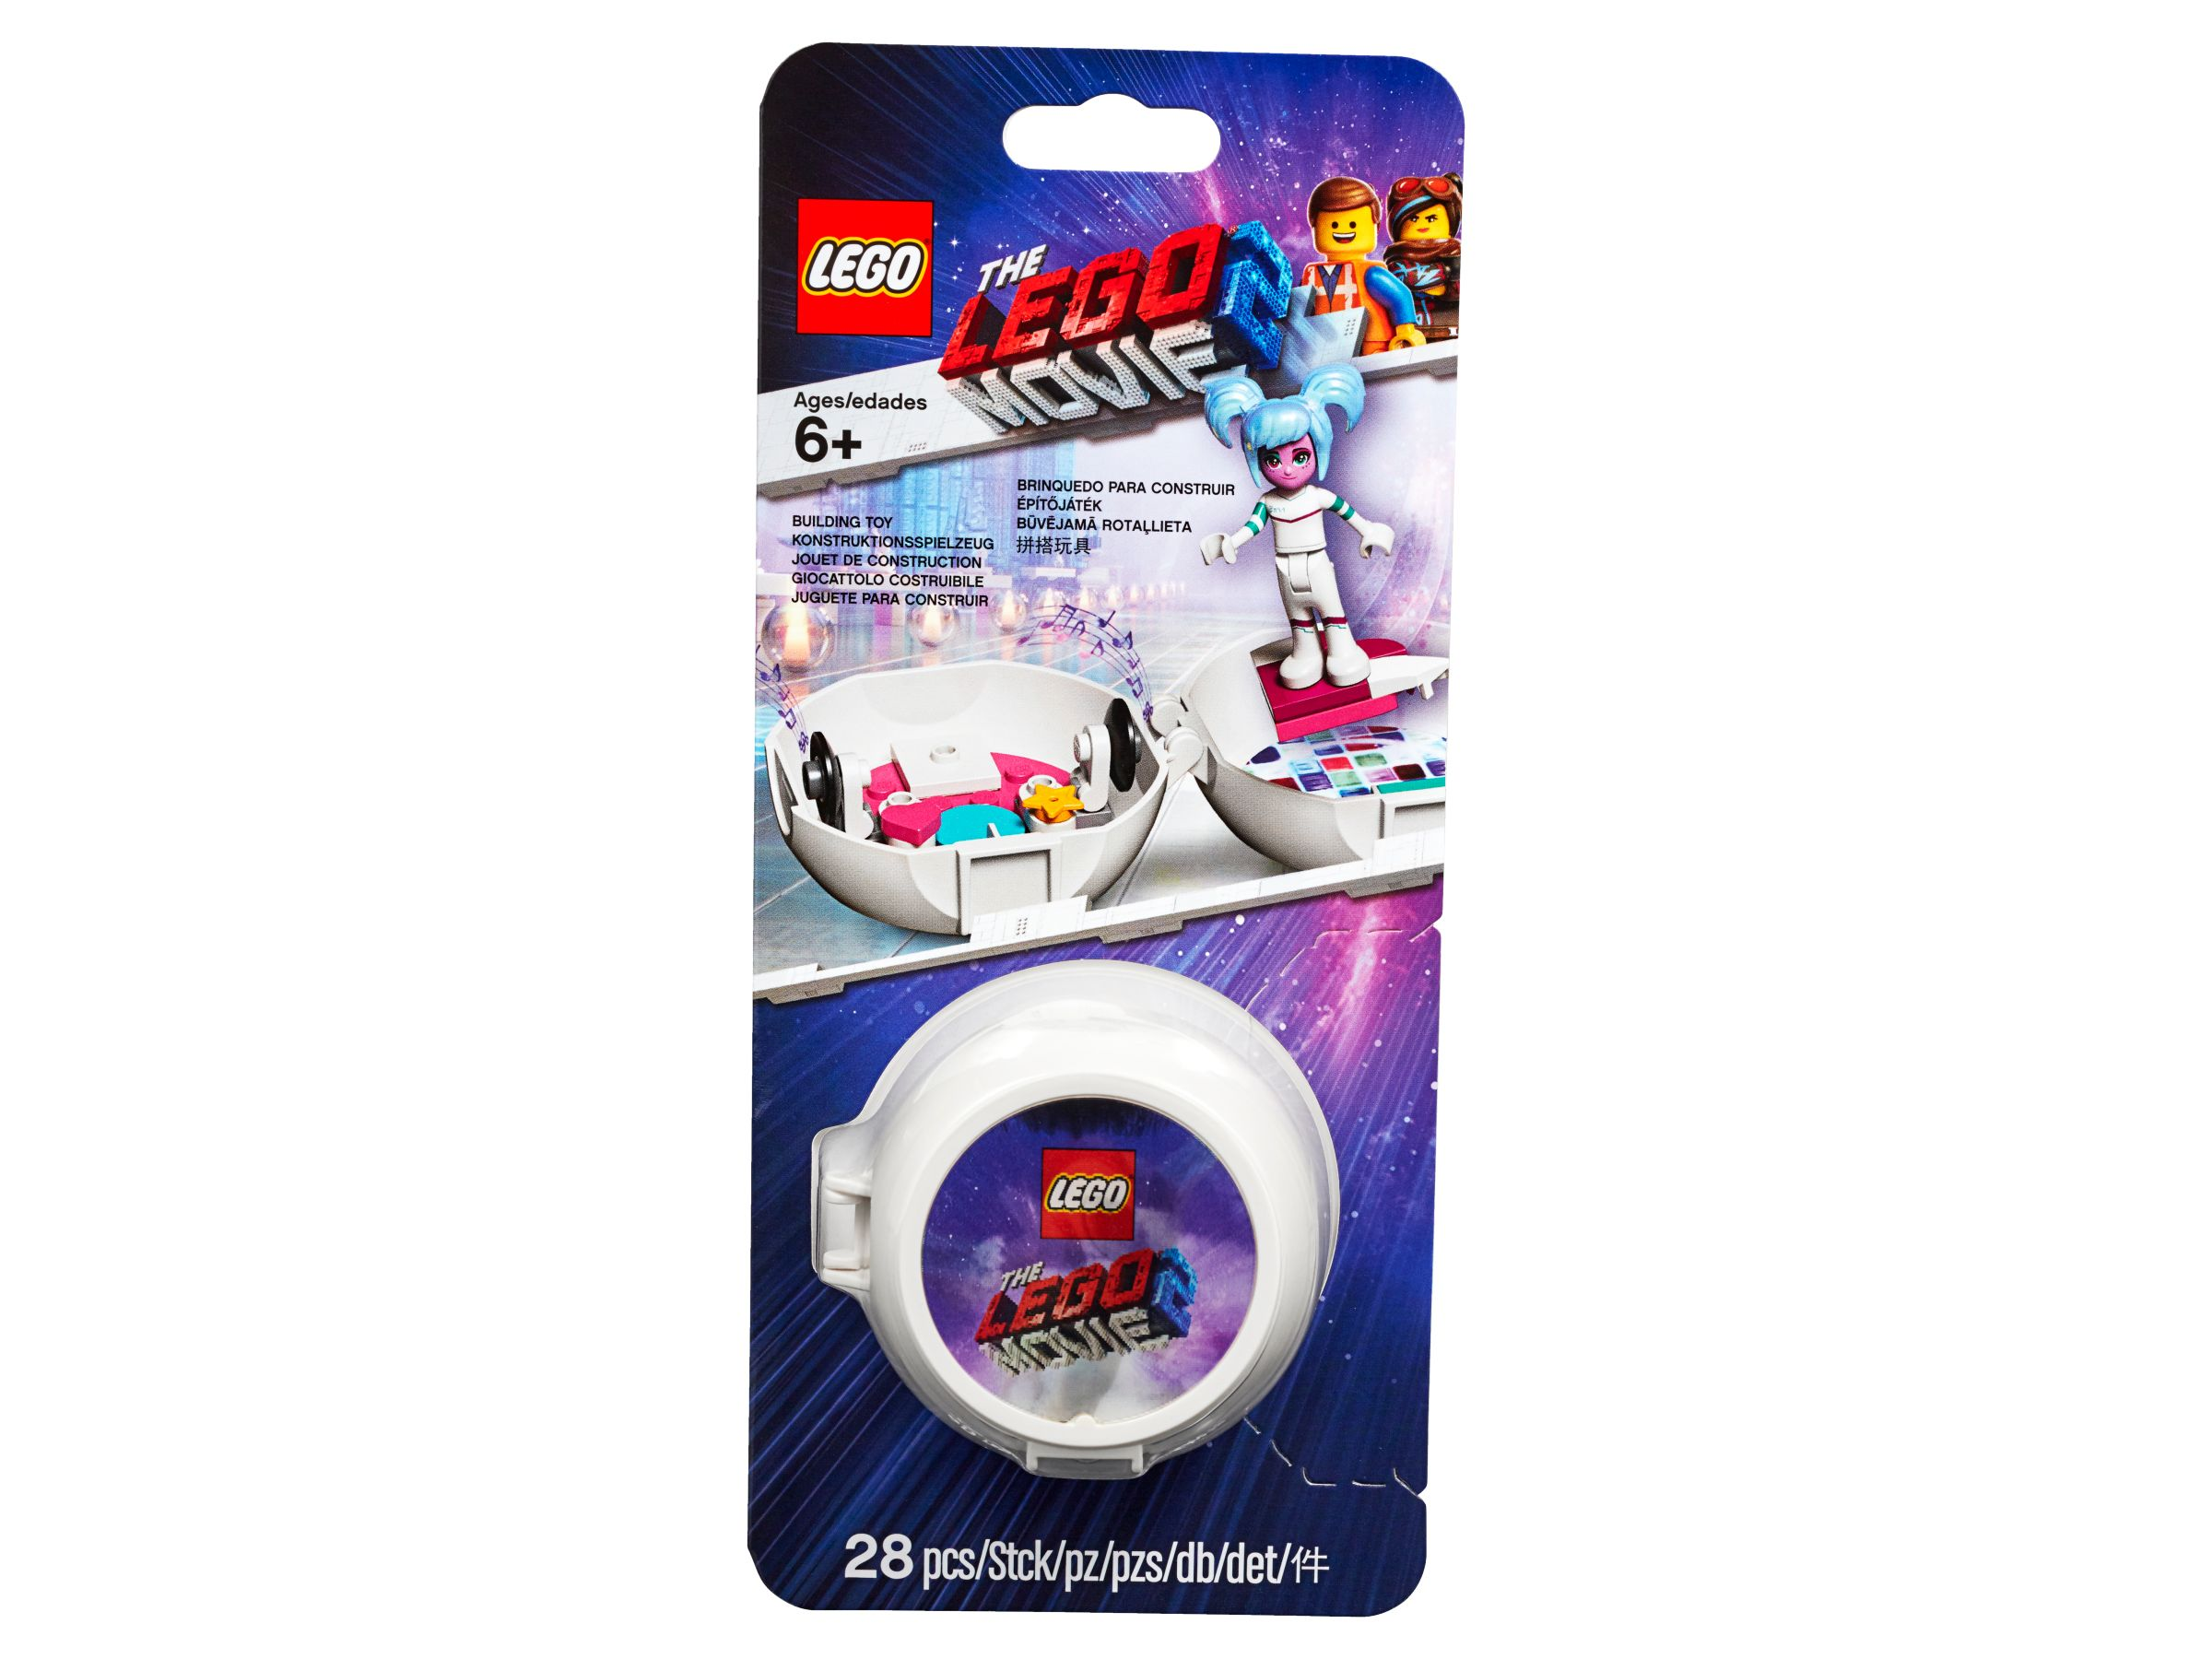 LEGO The Lego Movie 2 853875 Sweet Mischmaschs Disco-Pod LEGO_853875_alt1.jpg